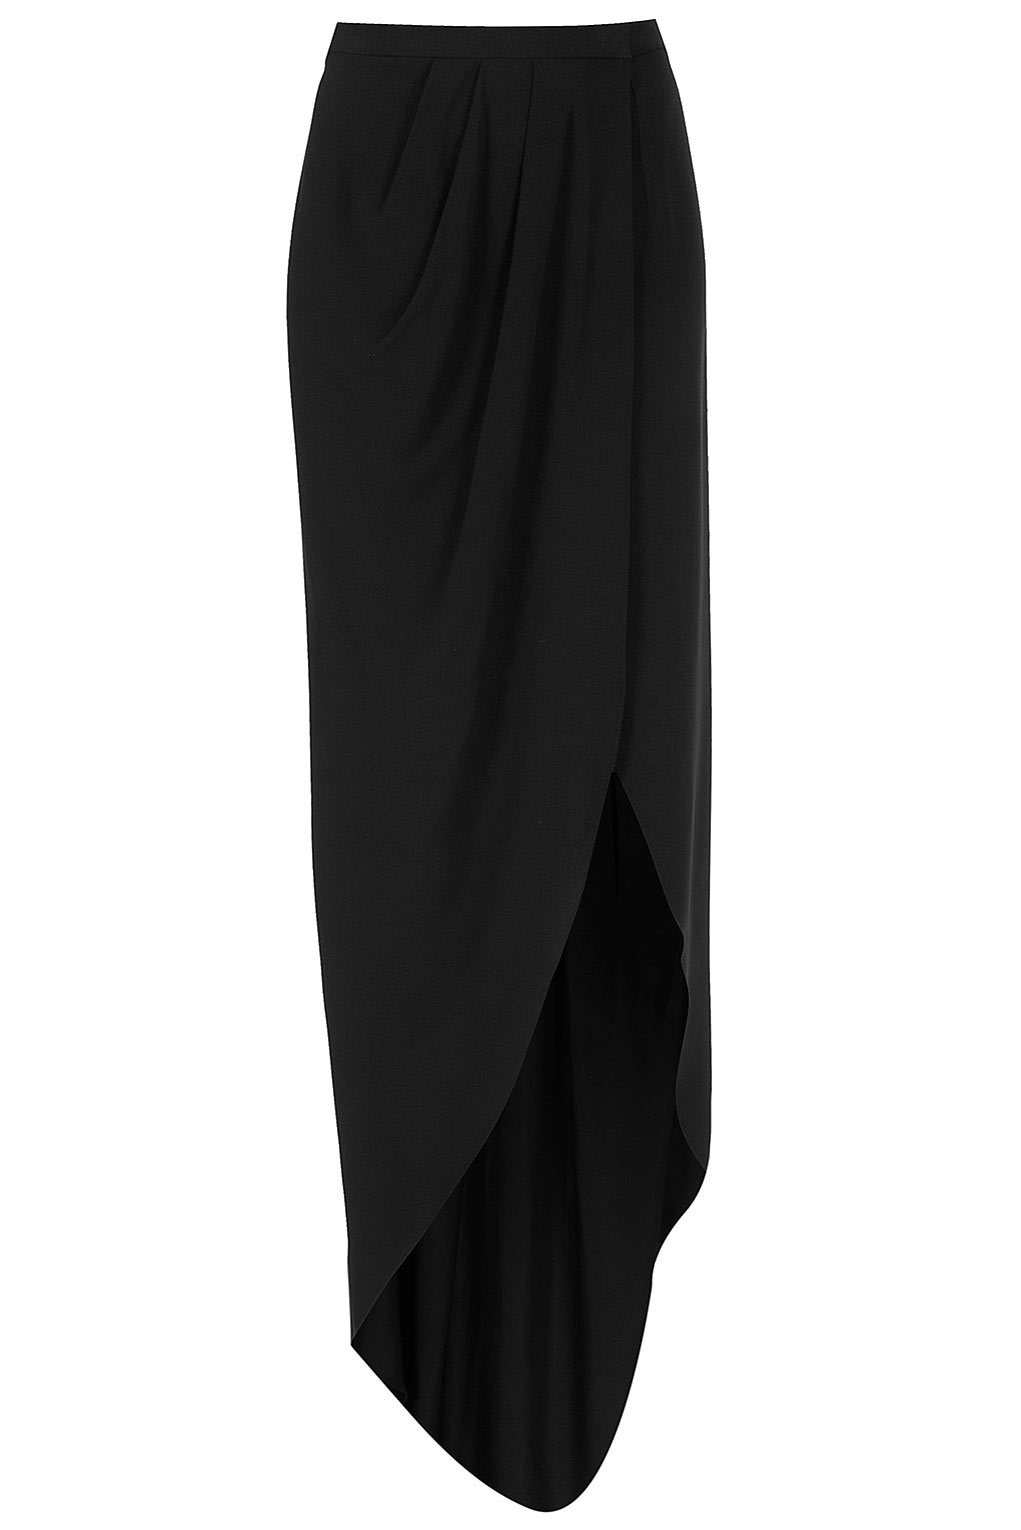 Topshop Wrap Maxi Skirt By Boutique in Black | Lyst